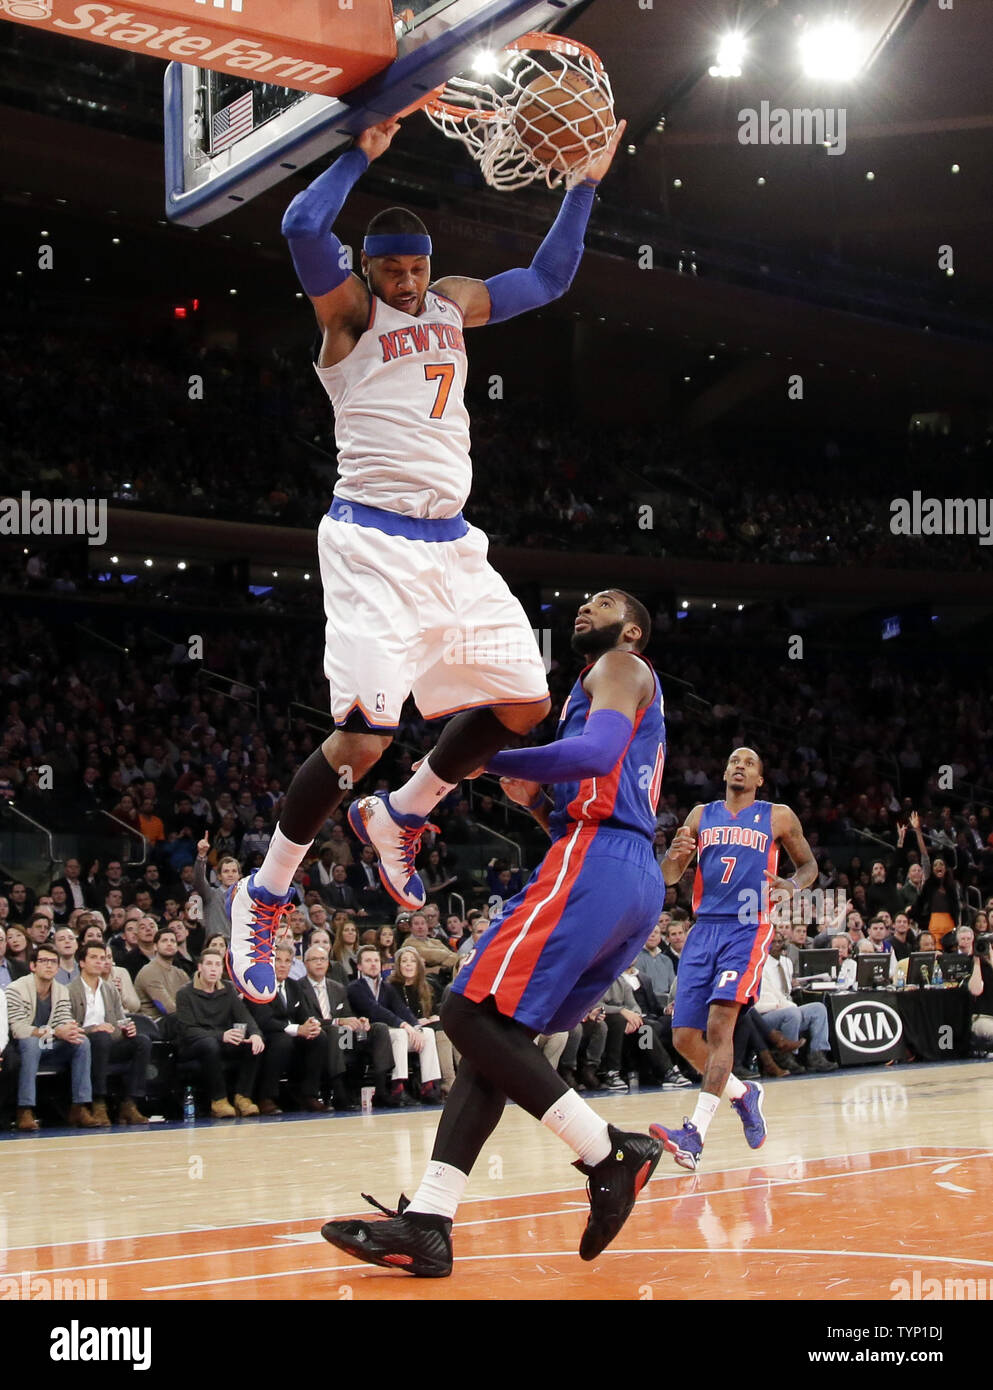 New York Knicks Carmelo Anthony dunks the basketball over Detroit Pistons Andre Drummond in the third quarter at Madison Square Garden in New York City on January 7, 2014. The Knicks defeated the  Pistons  89-85.     UPI/John Angelillo Stock Photo